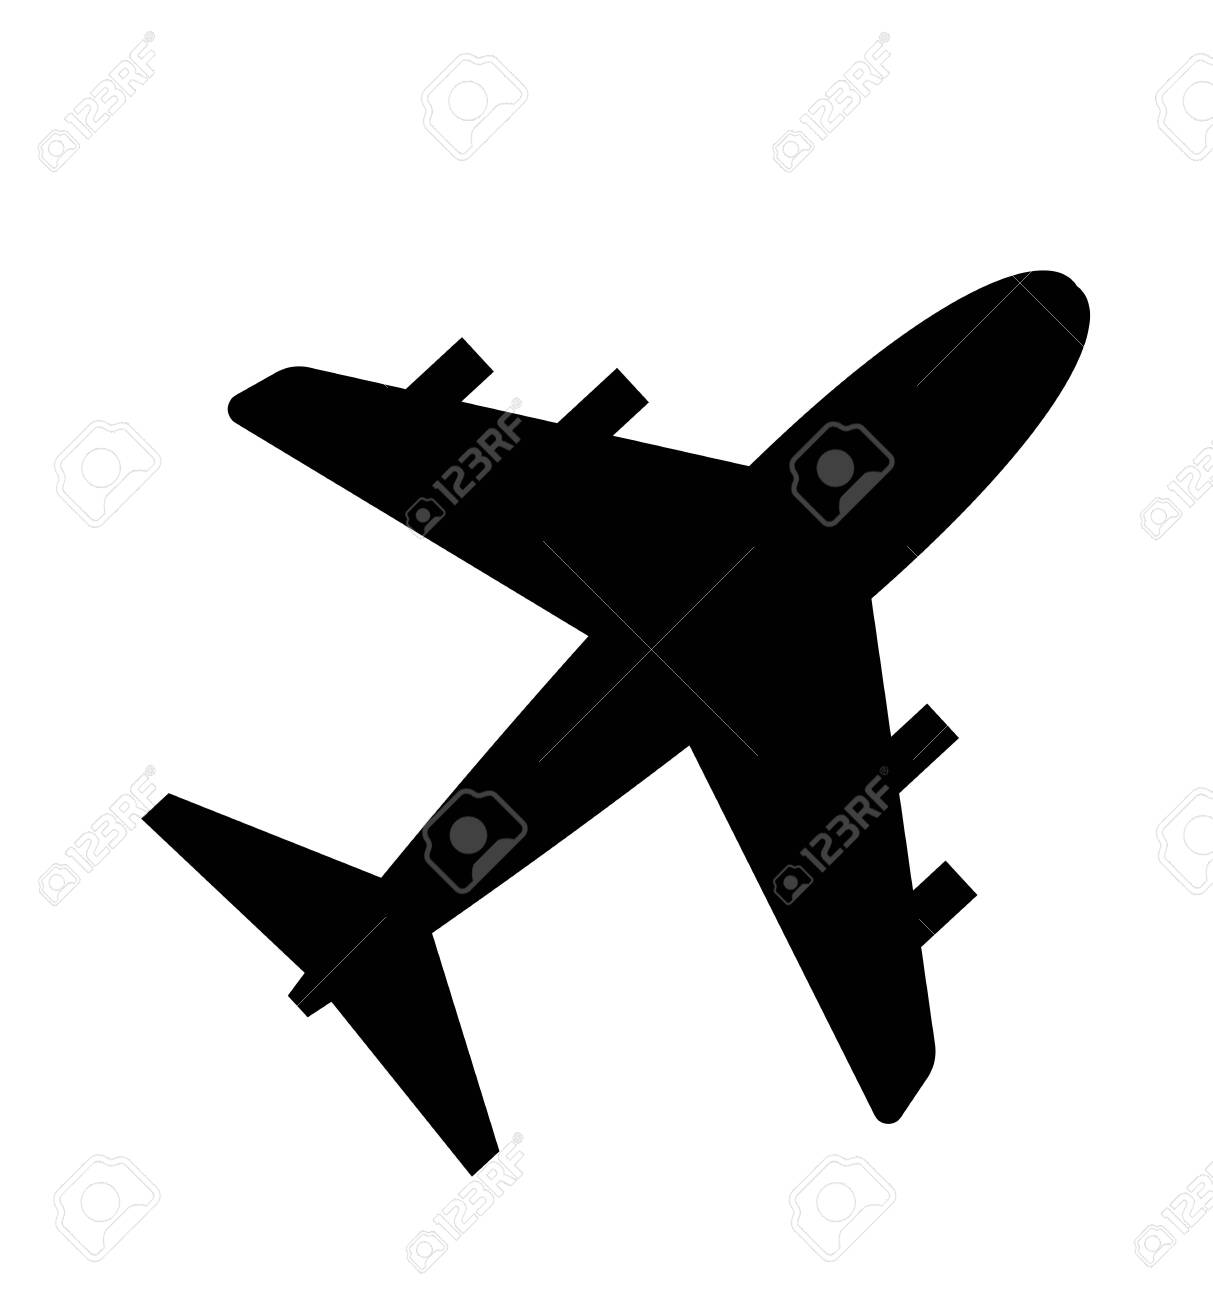 Vector airplane icon isolated on white flat - 136638308